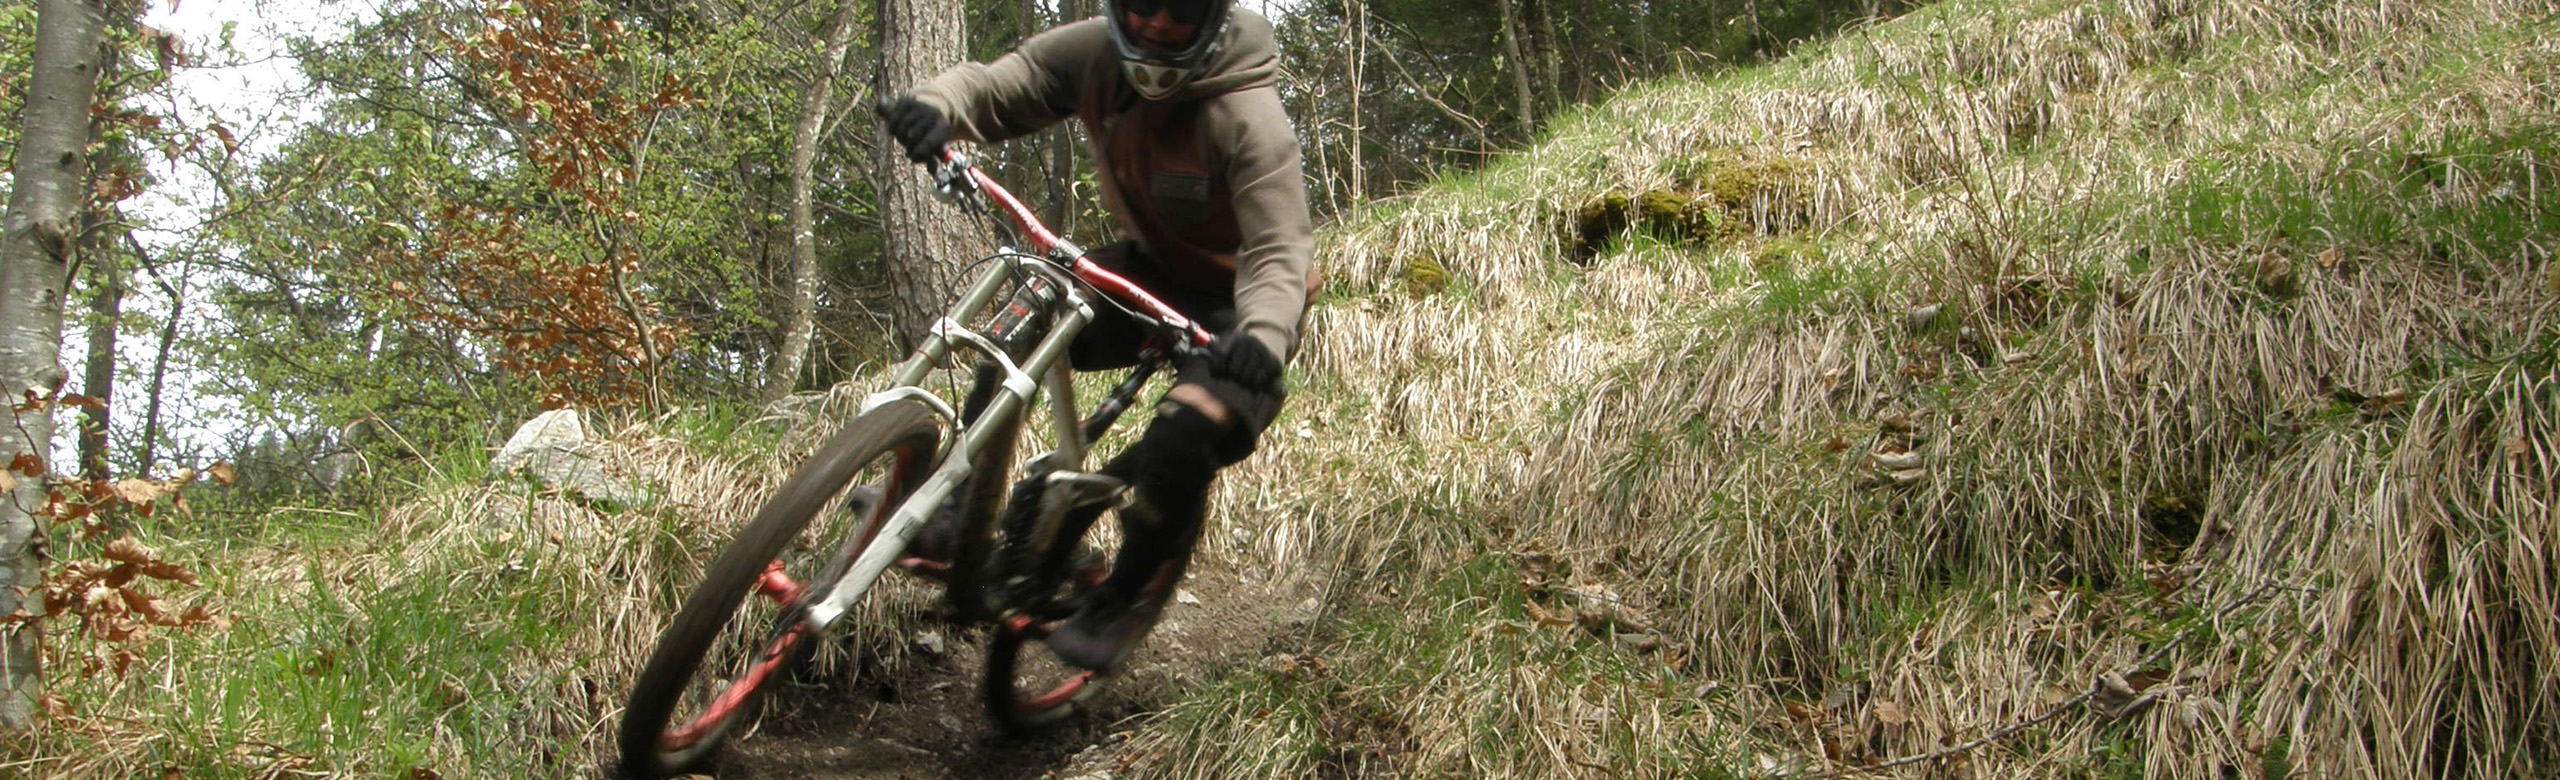 Enduro/freeride in Obwald